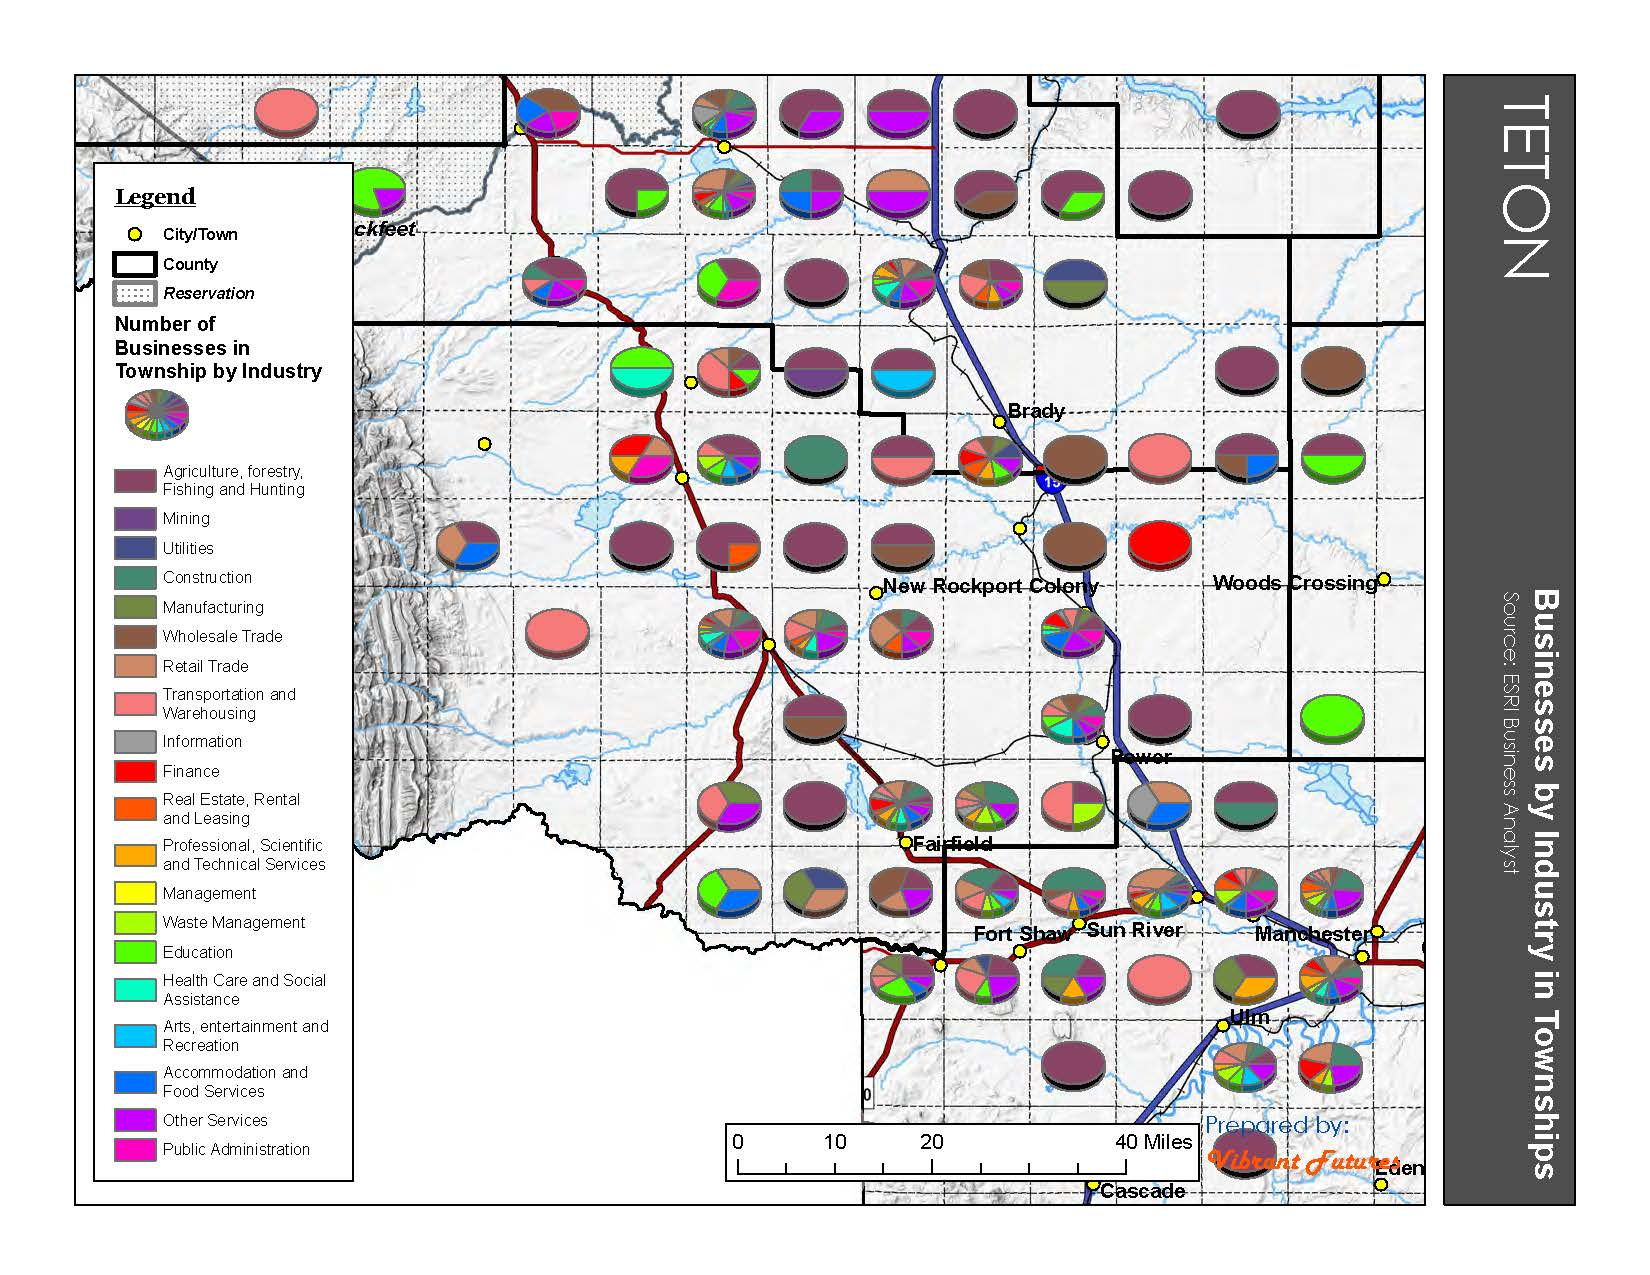 Businesses by Industry in Townships Teton County